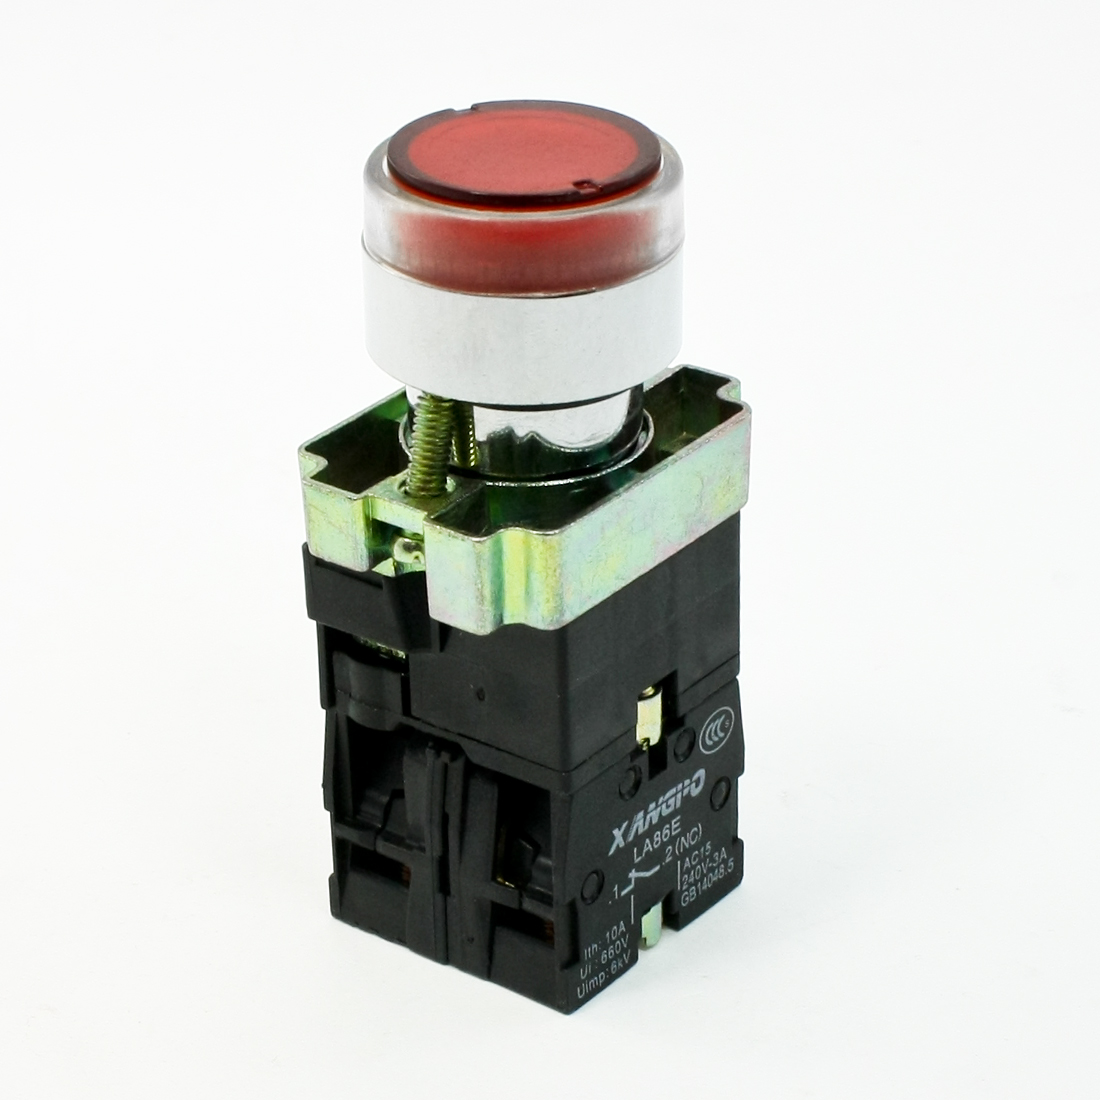 AC220V Indicator Lamp AC240V 3A 1NO 1NC Red Momentary Push Button Switch